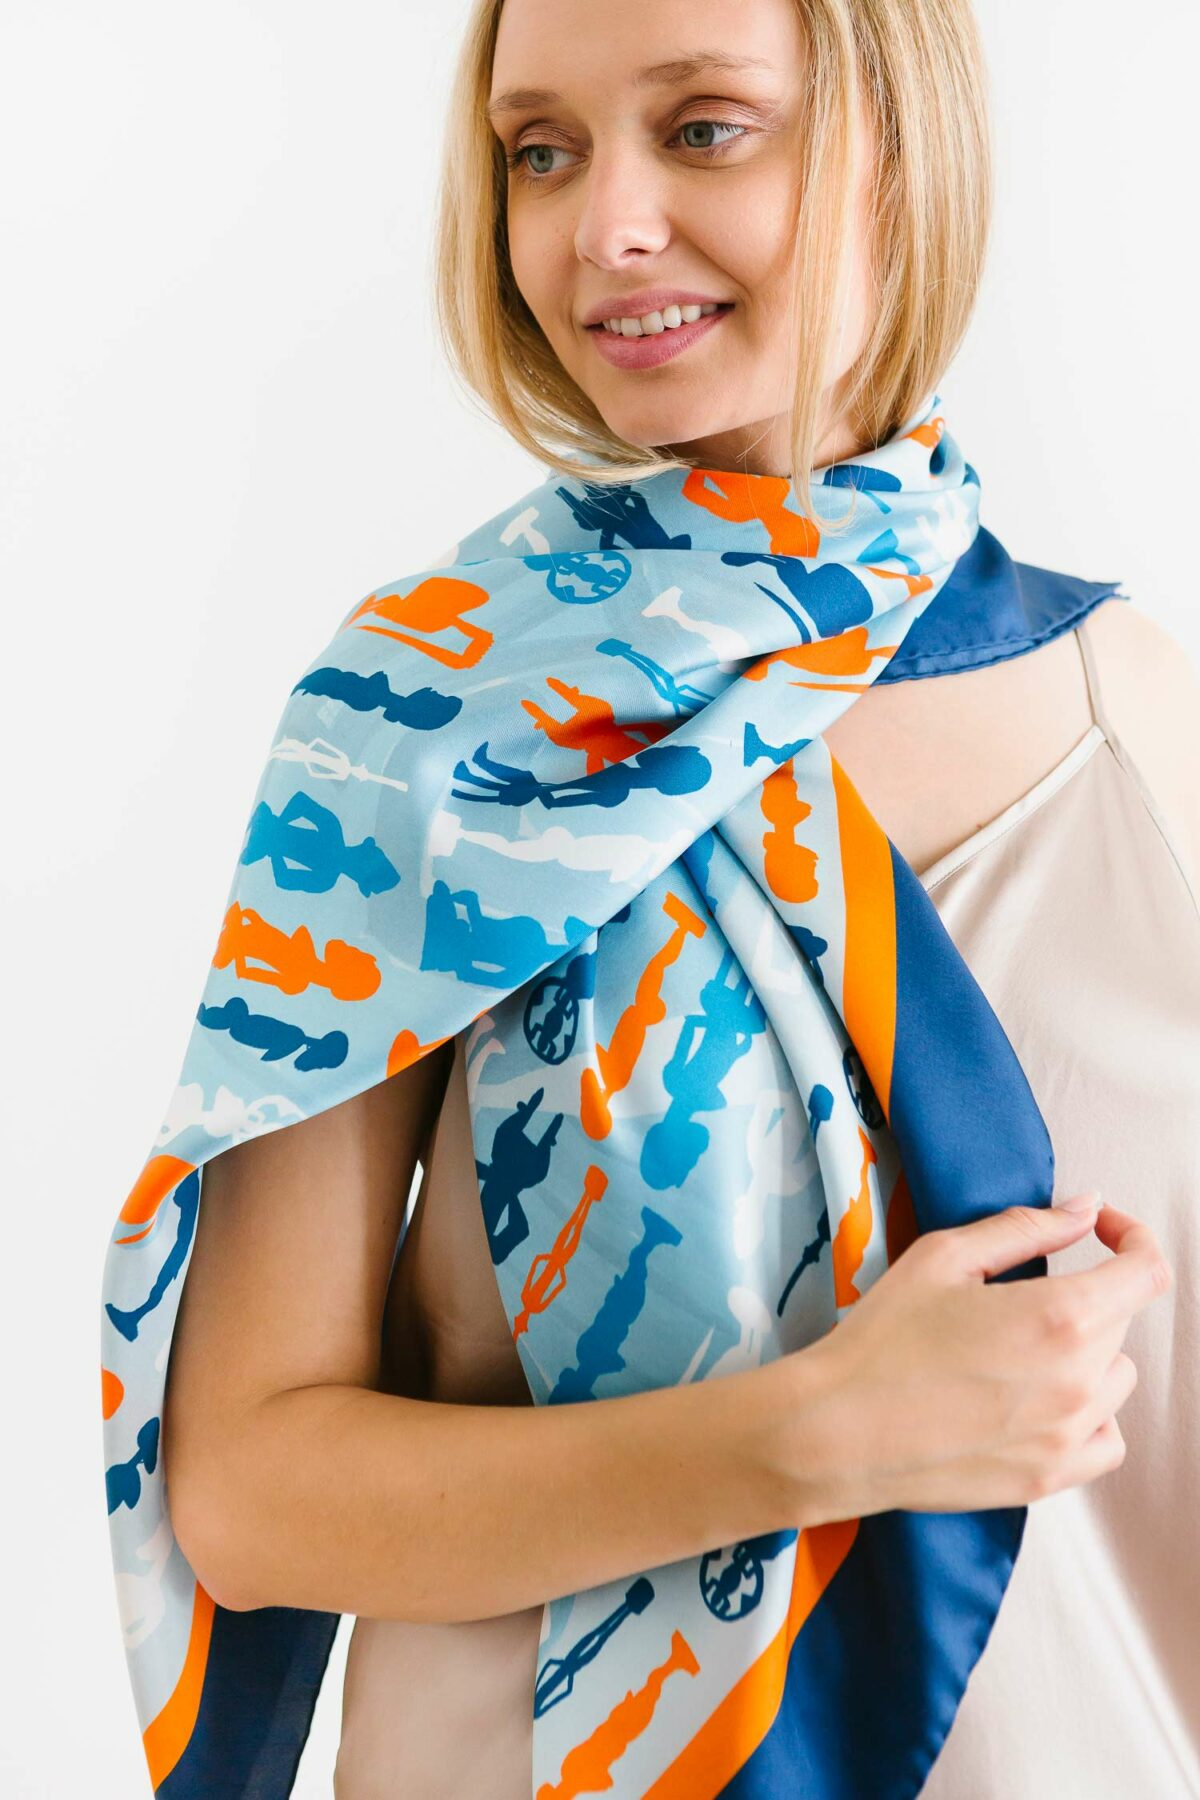 woman wearing a blue and orange scarf